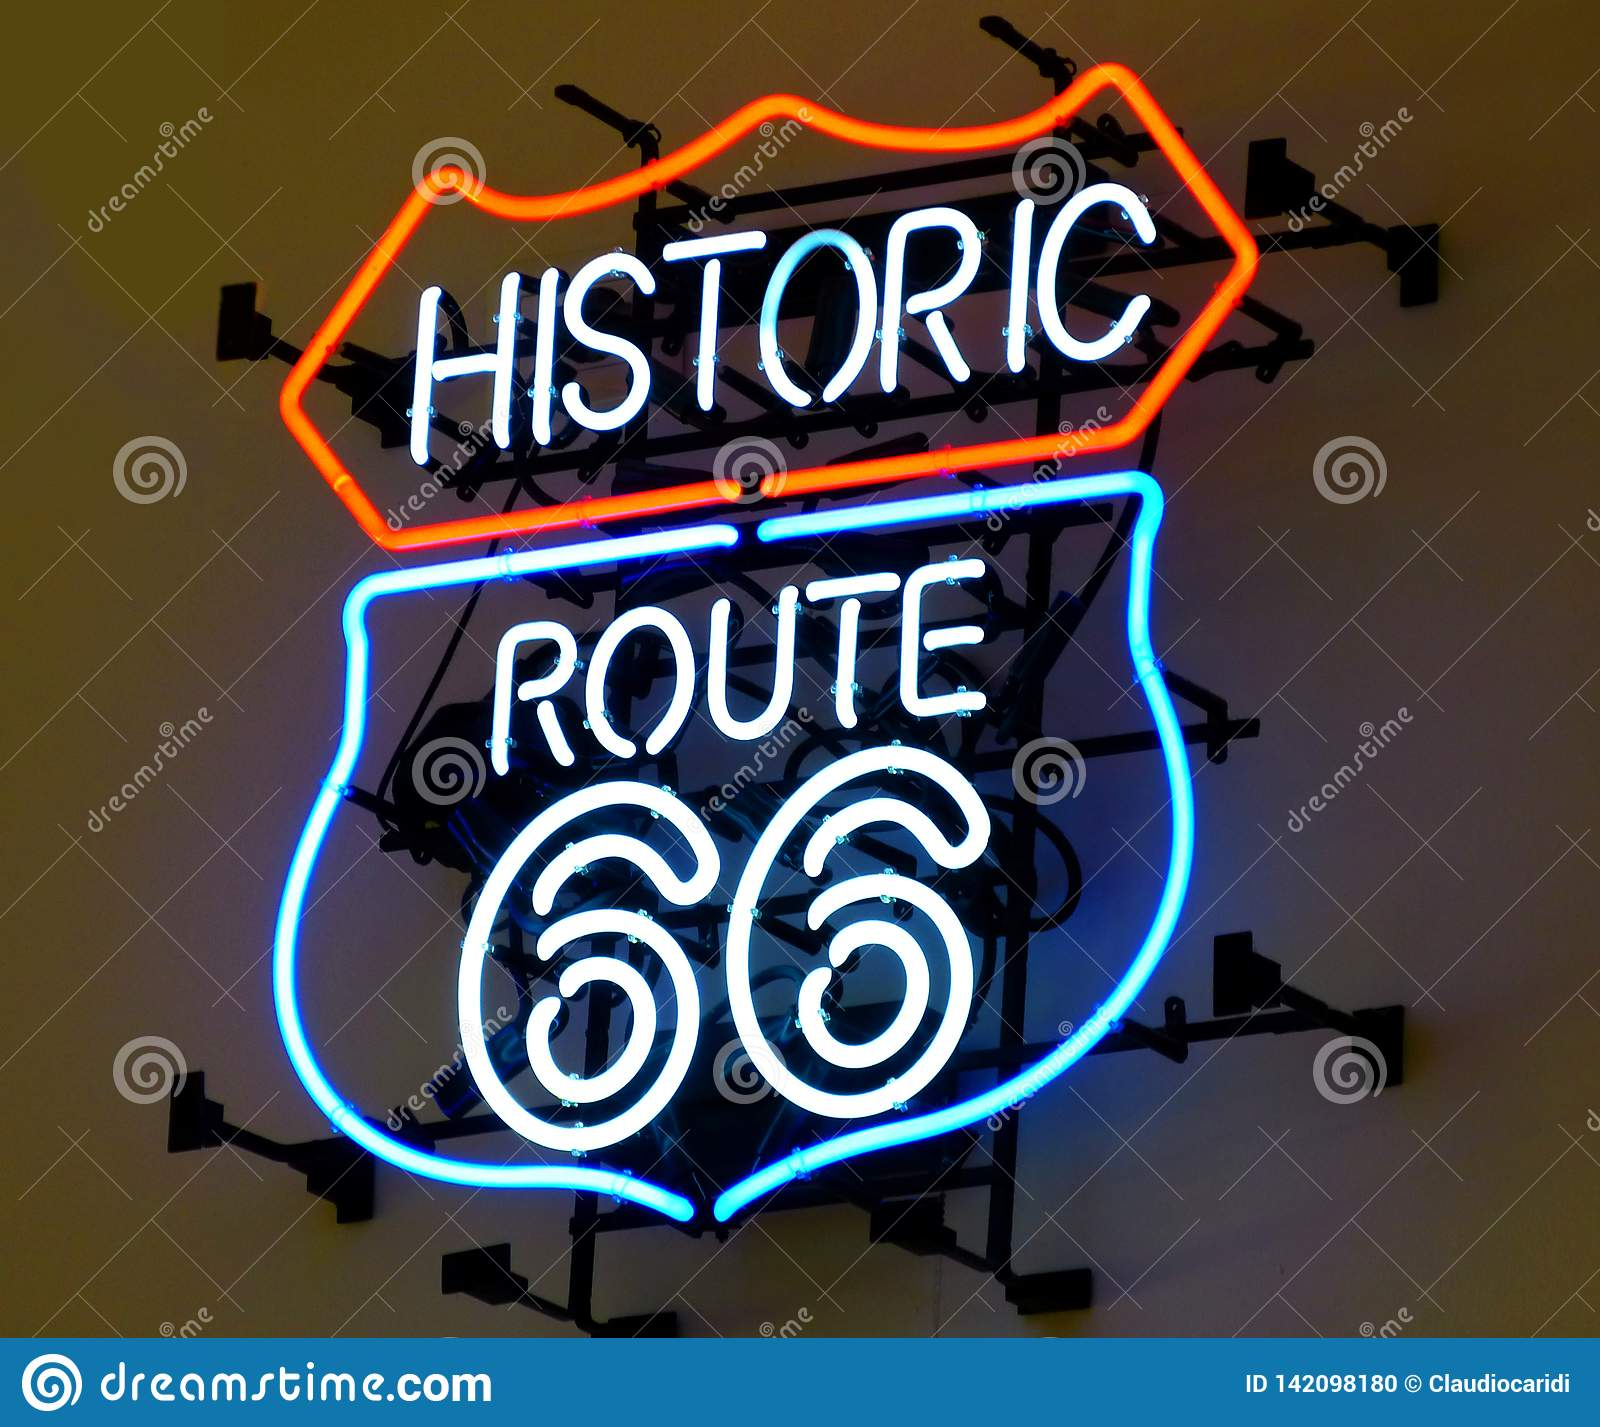 Historic Route 66, neon sign in red and blue light